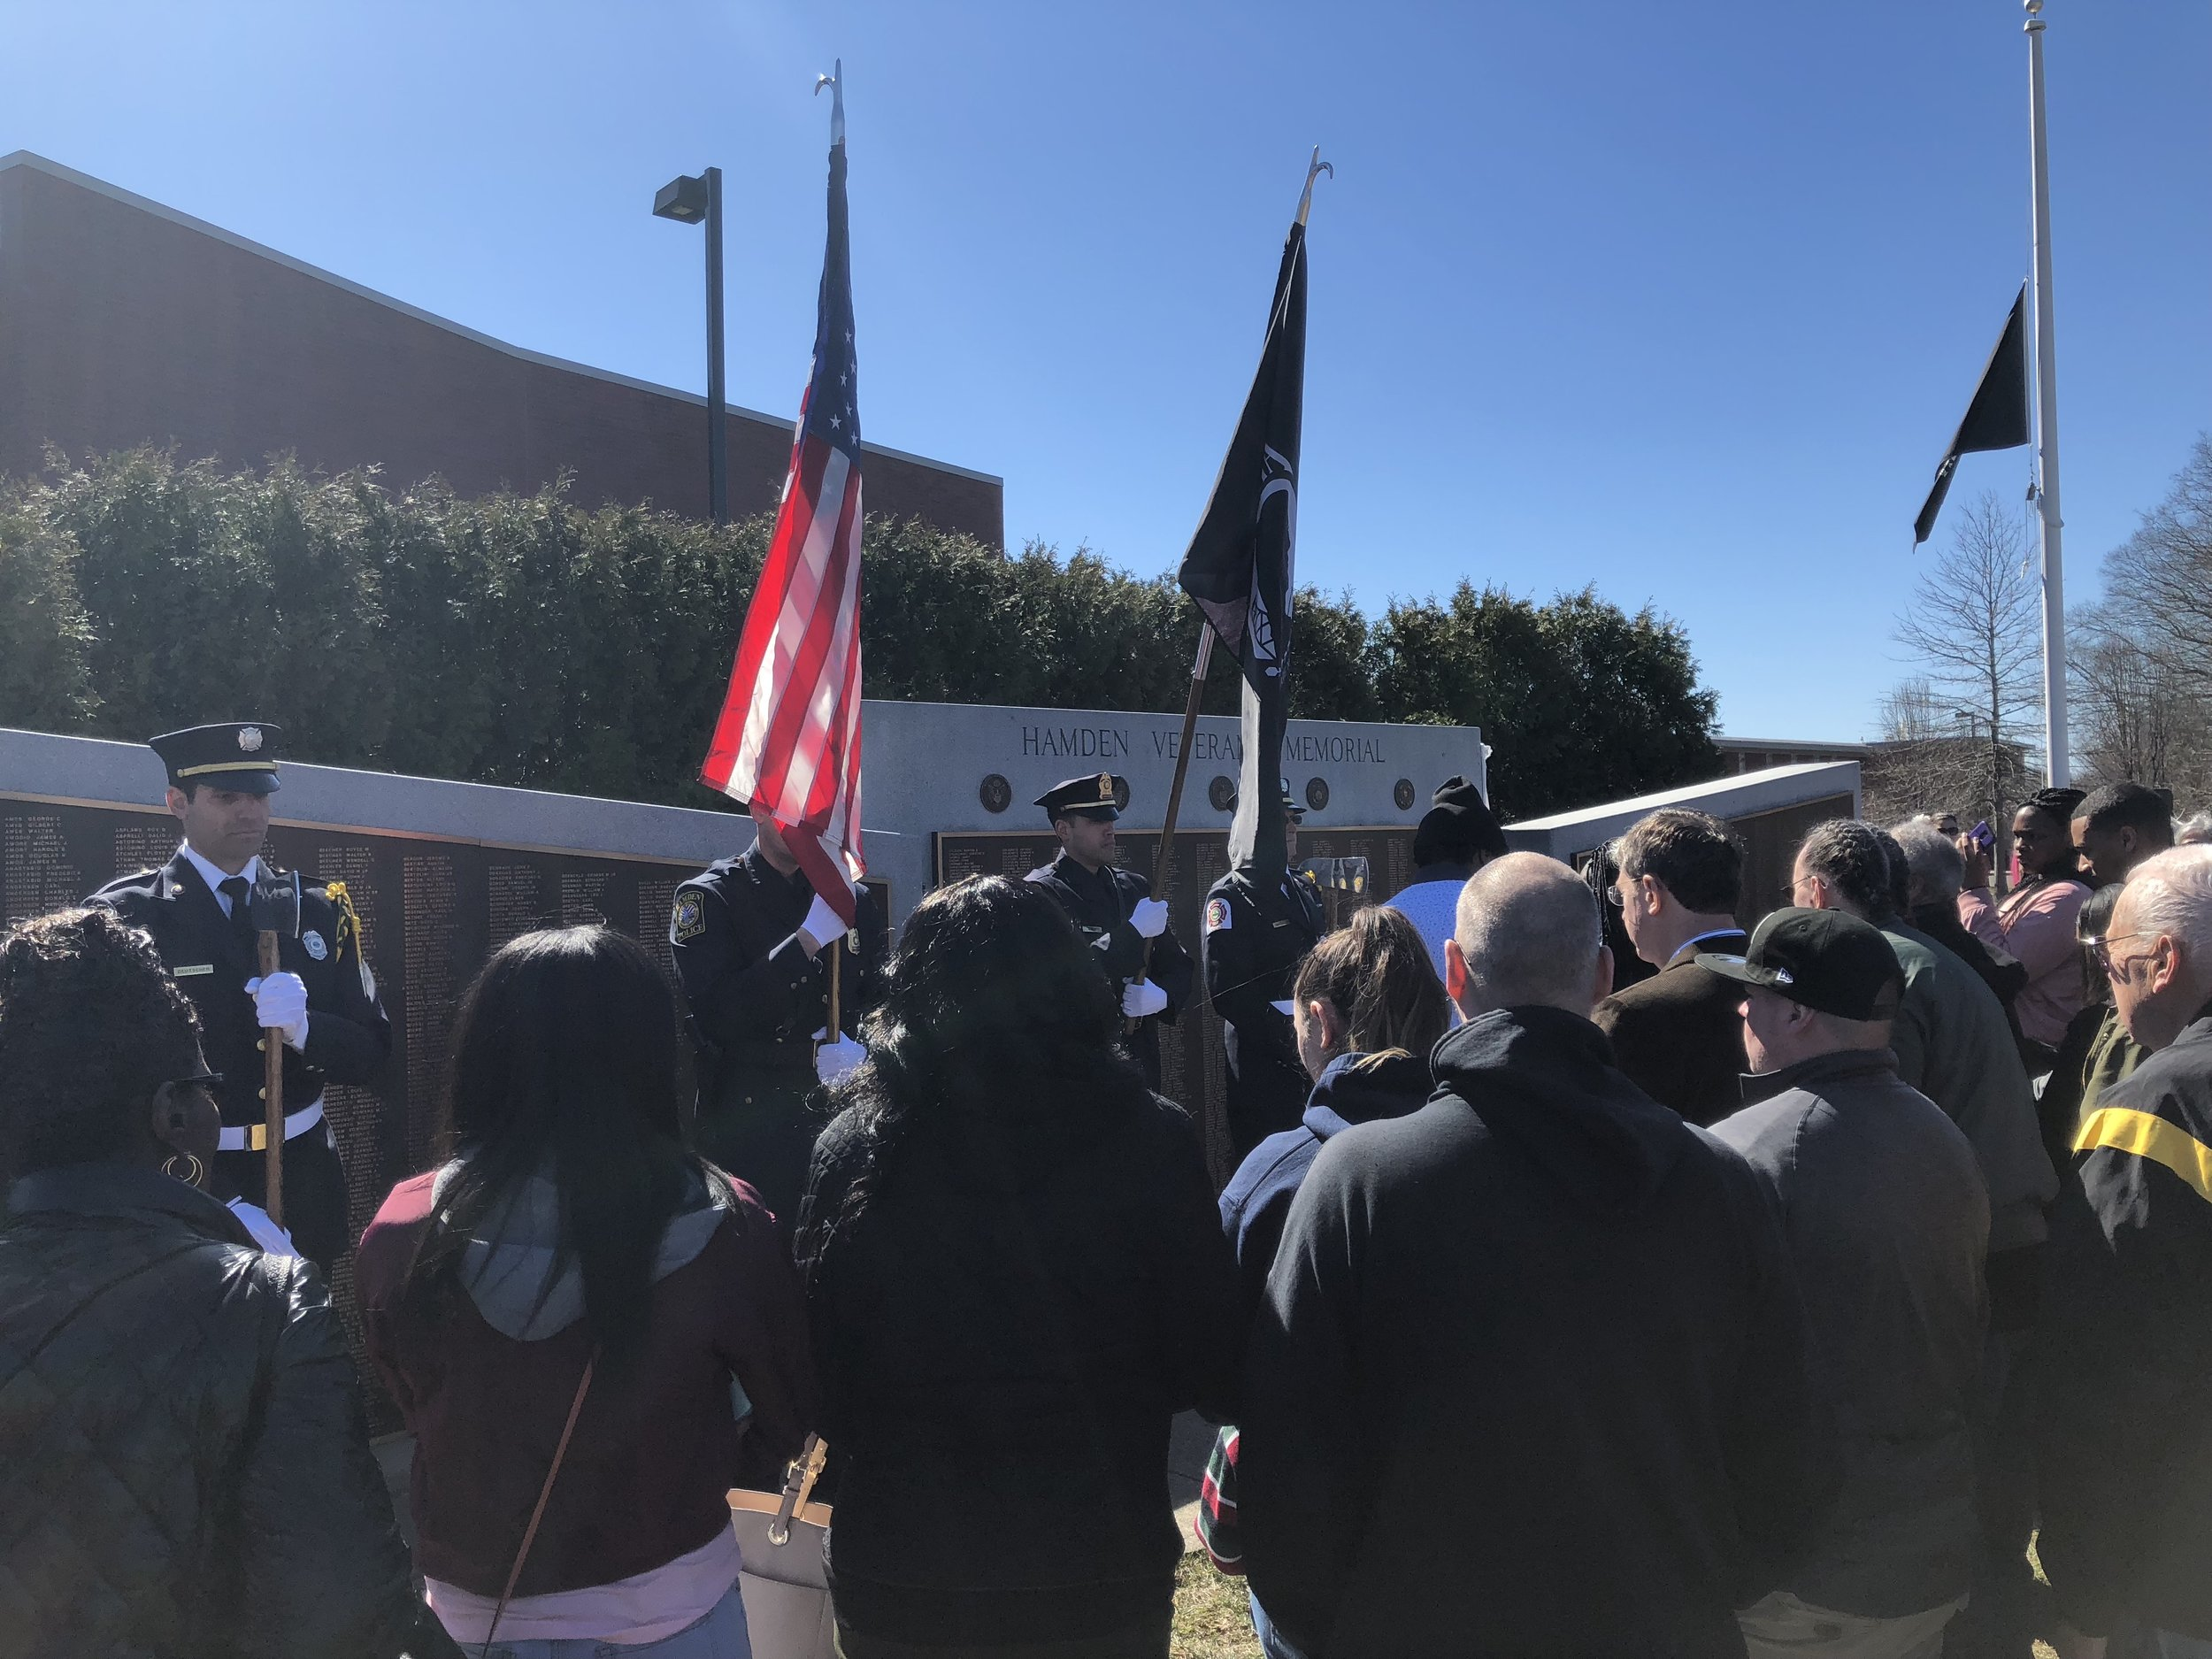 On Saturday March 31,Hamden unveiled a brass plaque commemorating 151 veterans. The plaque will serve as an addition to the Hamden Veterans' Memorial.